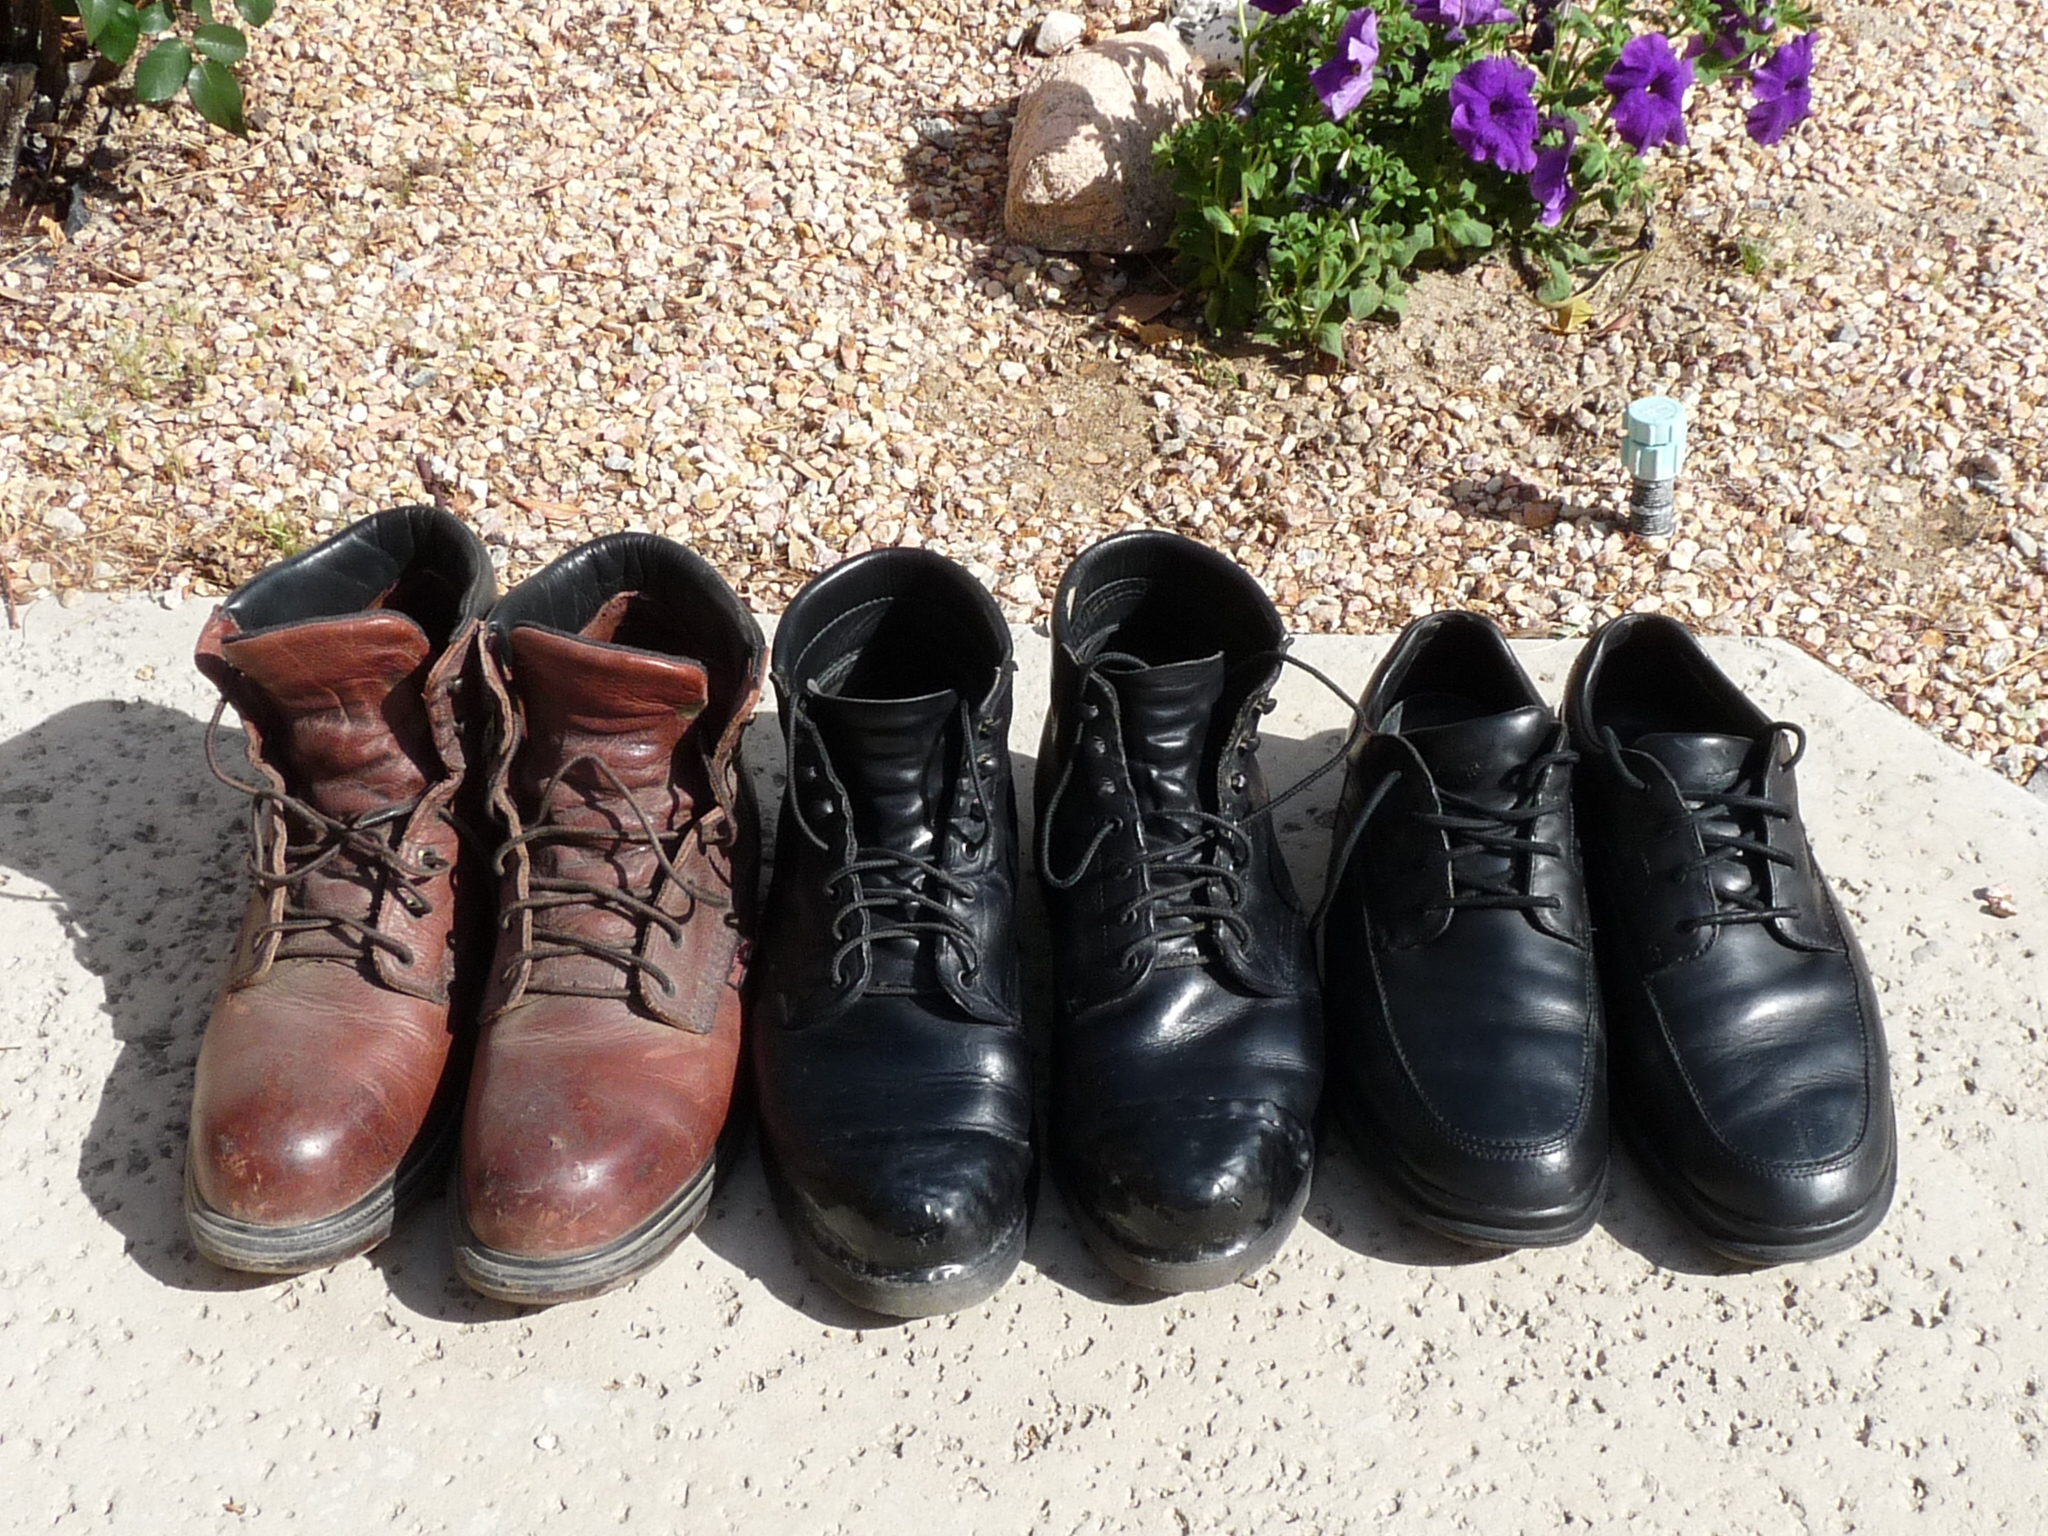 I Like Red Wing Boots. But What Happens When They AREN&39T &39Built To